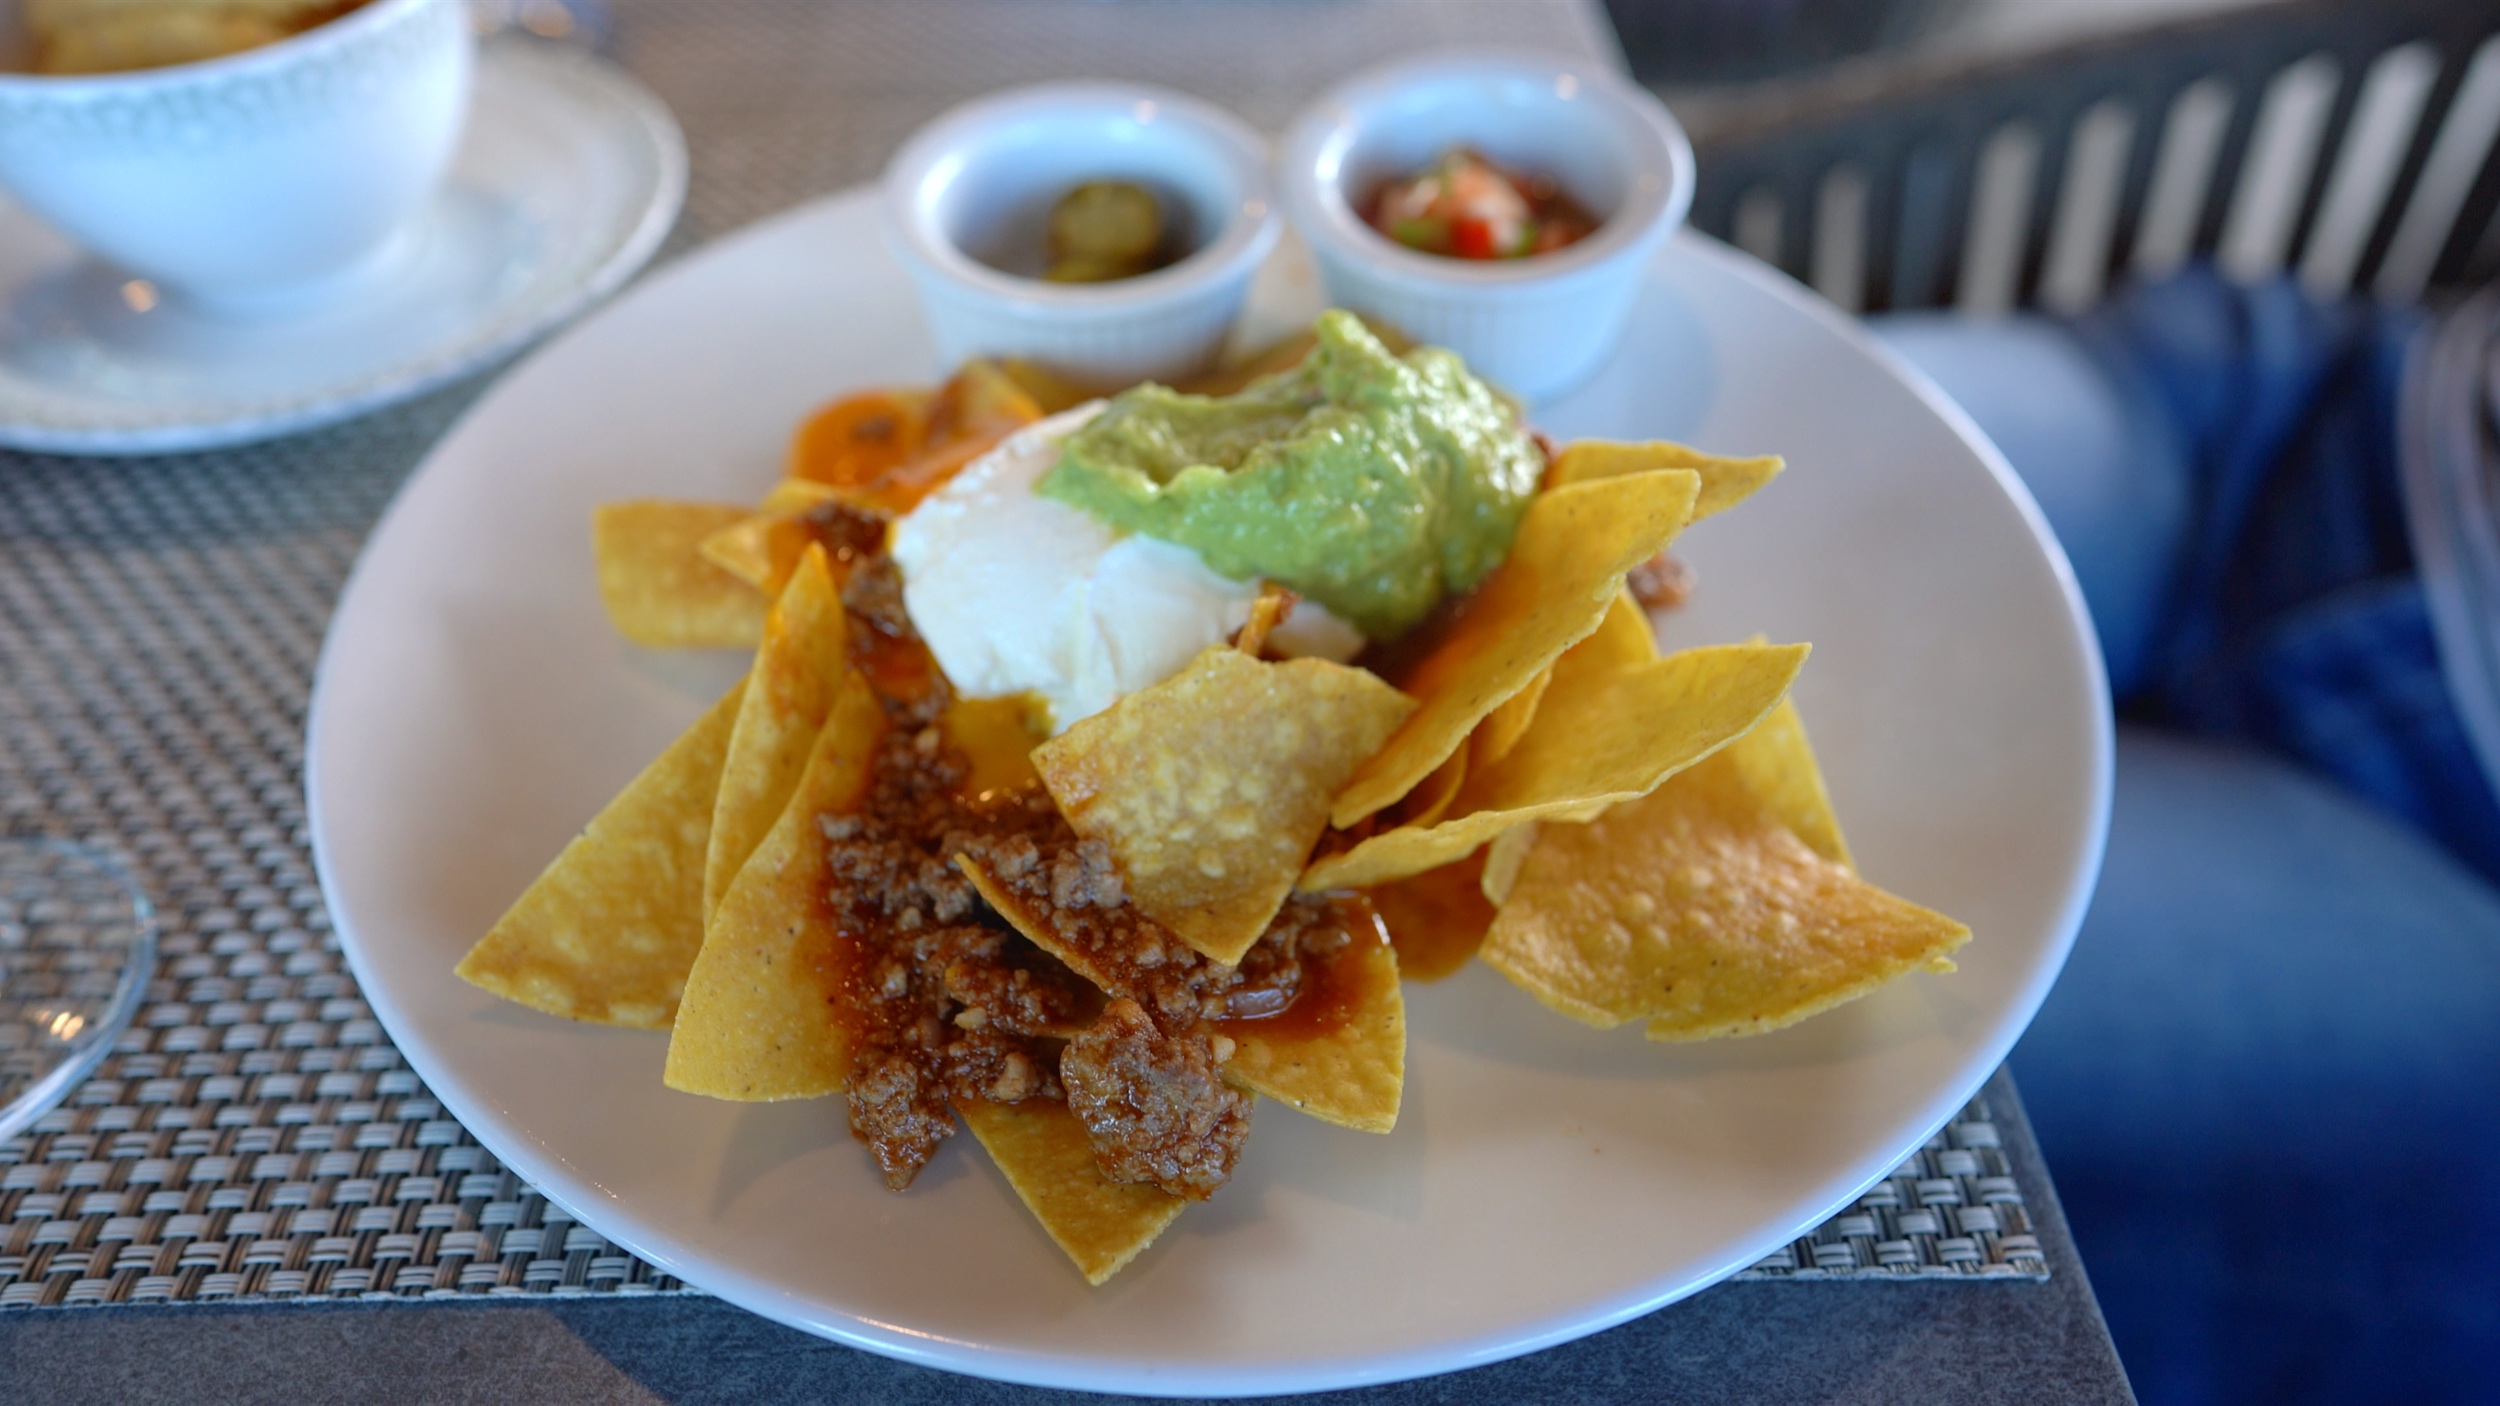 The delicious nachos, my favourite lunch.